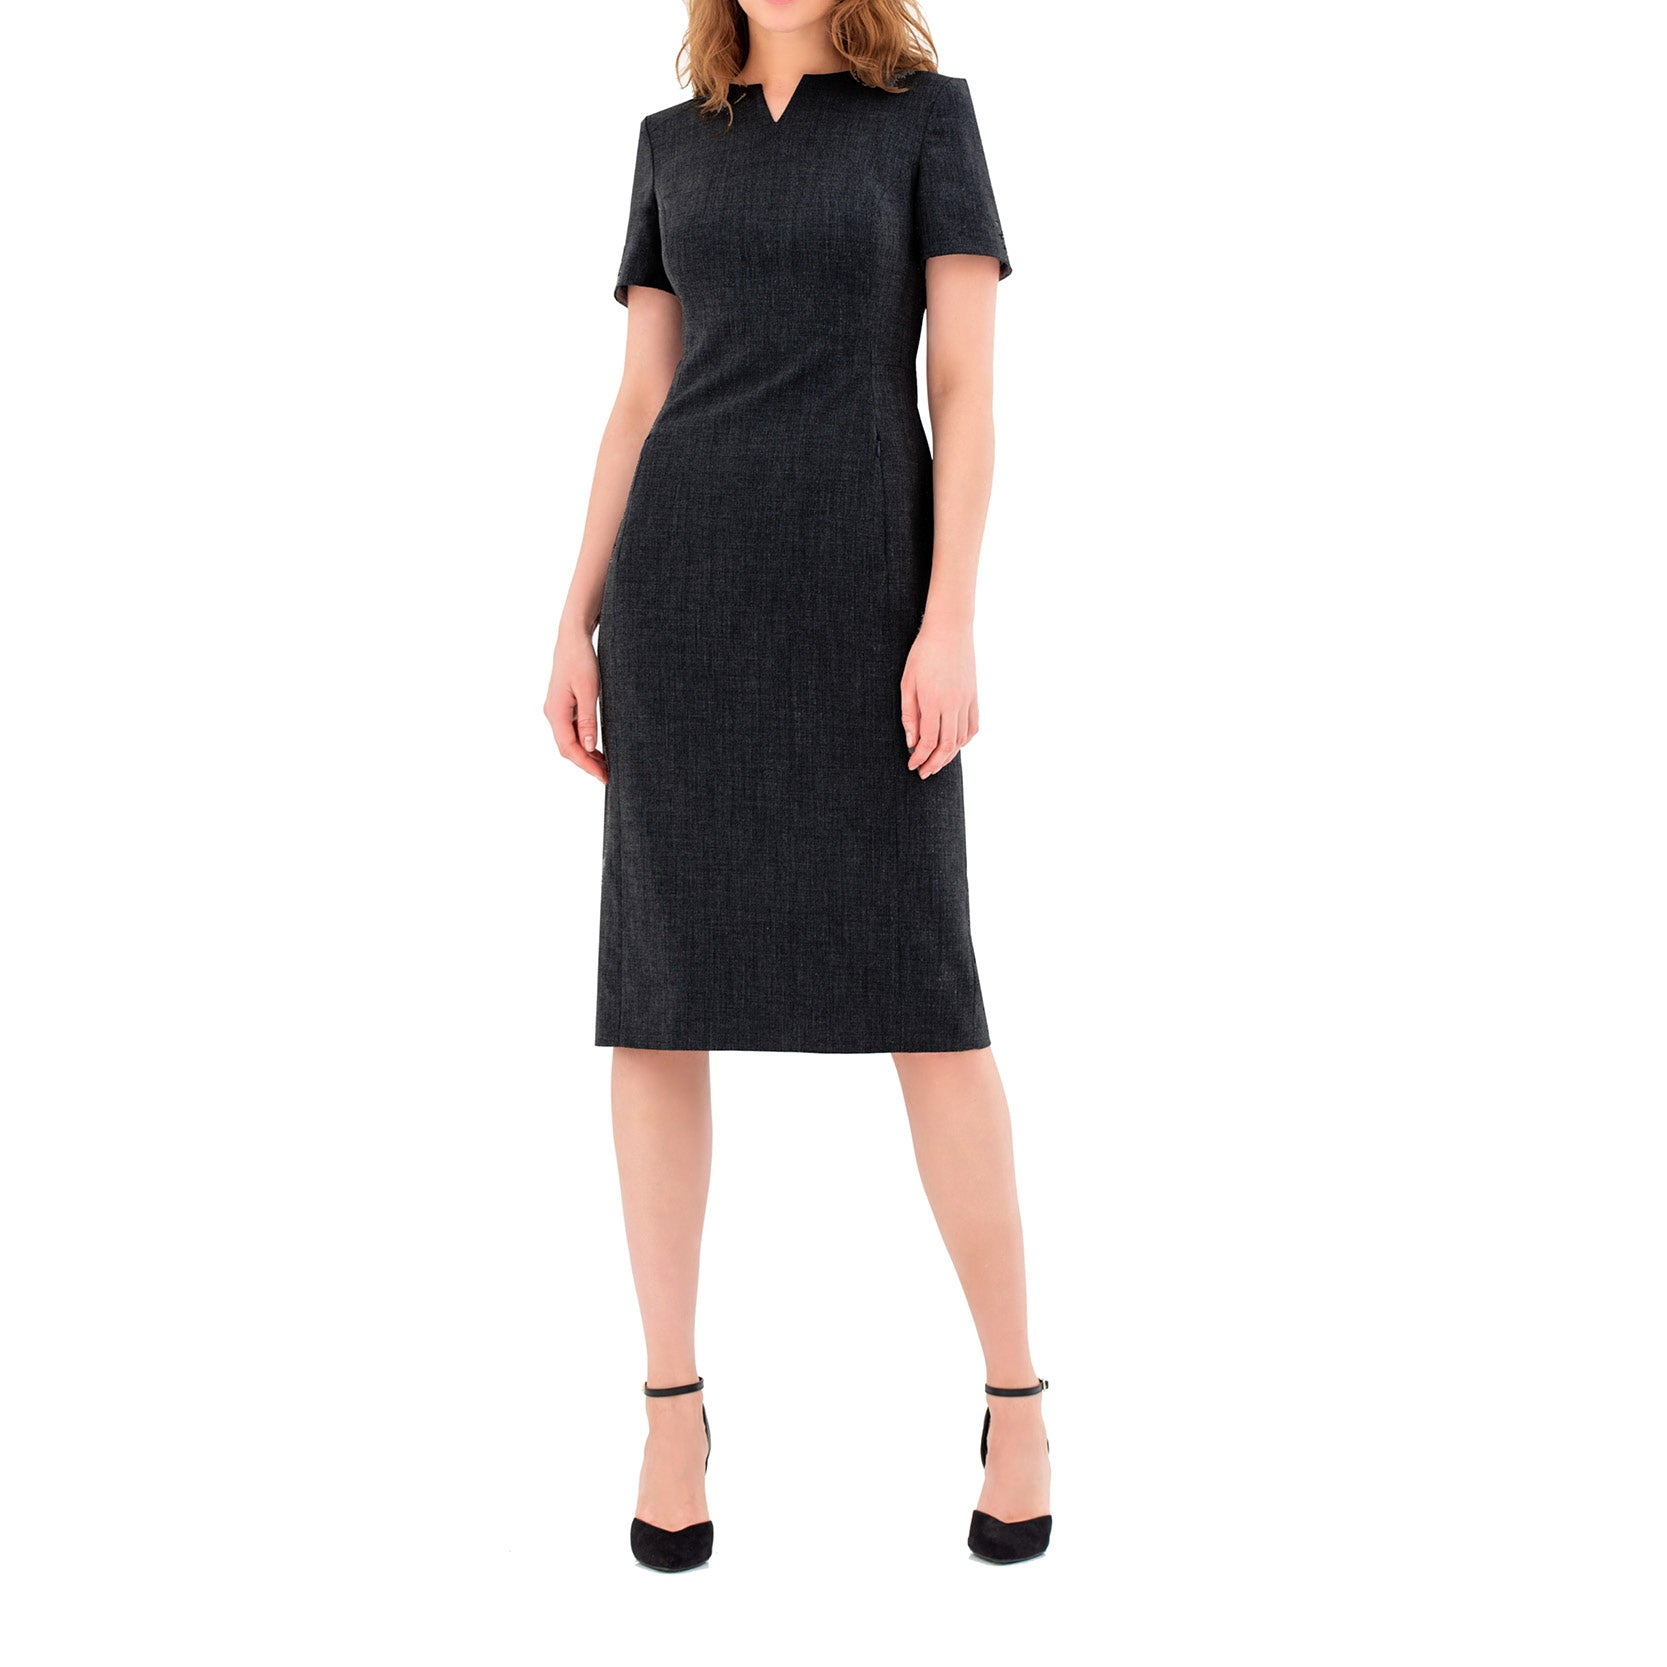 Perivale Ladies Dress Charcoal